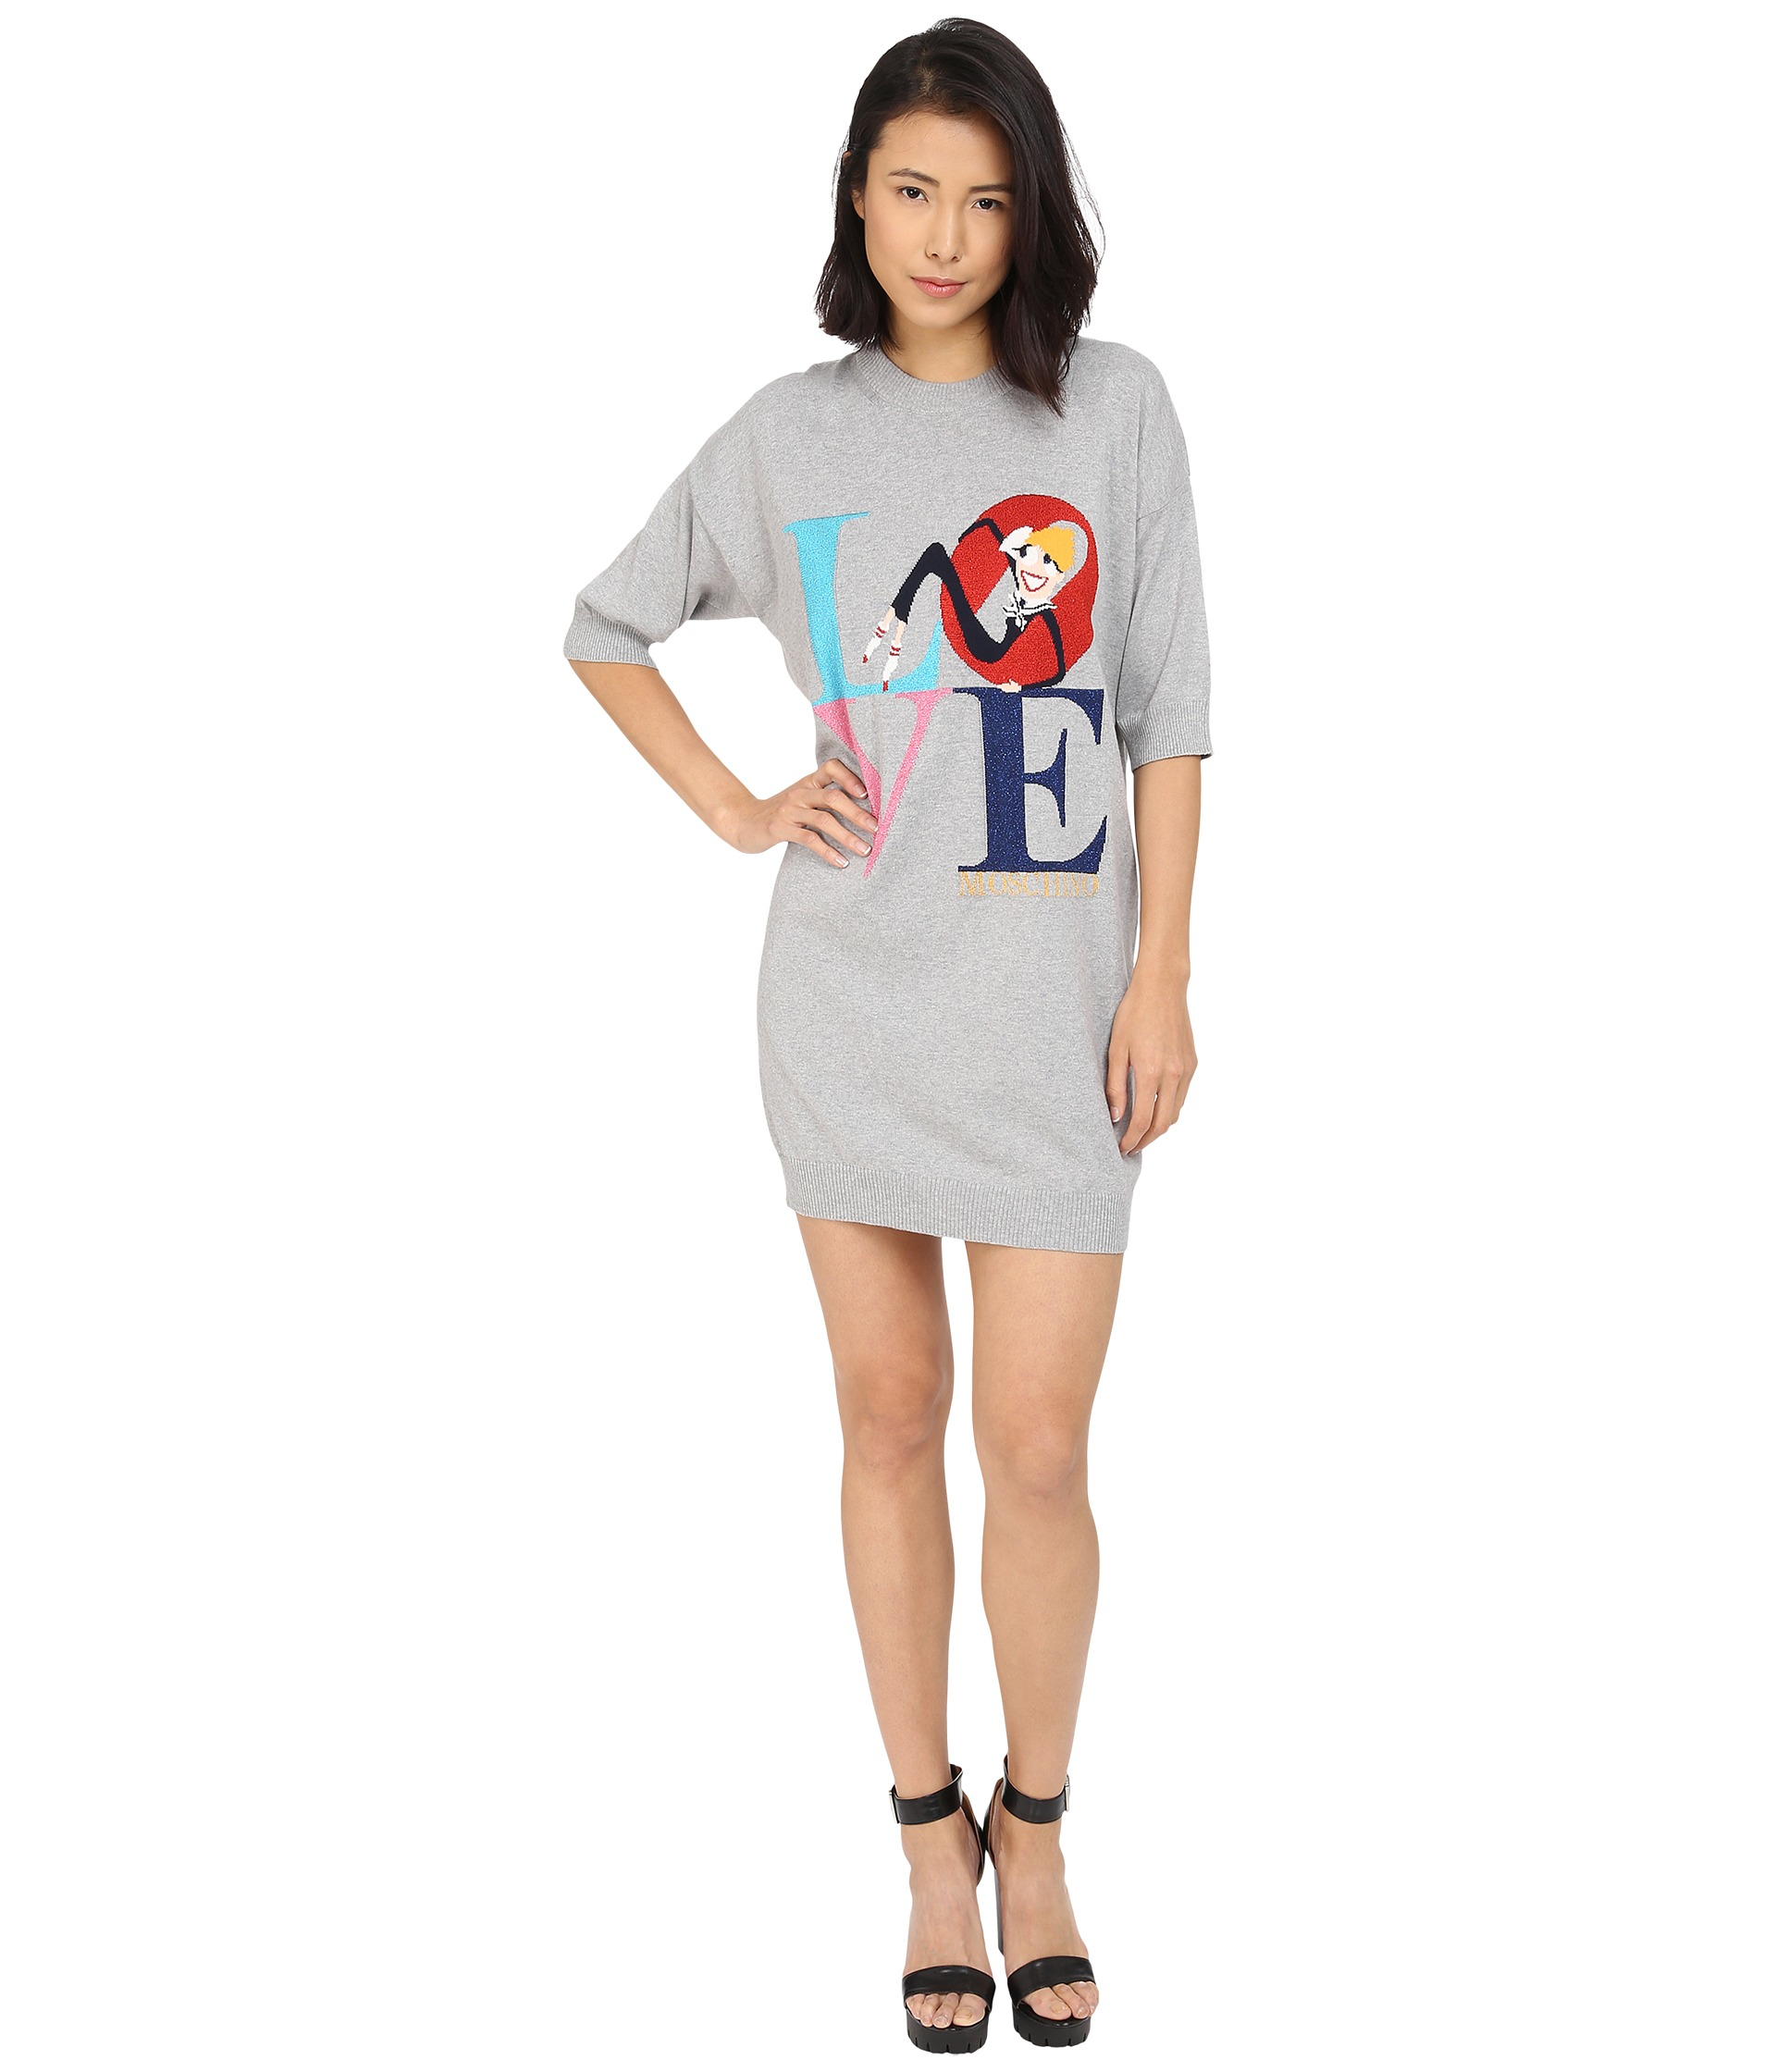 eb8006a1eea Lyst - Love Moschino Love Graphic 1 2 Sleeve Sweater Dress in Gray